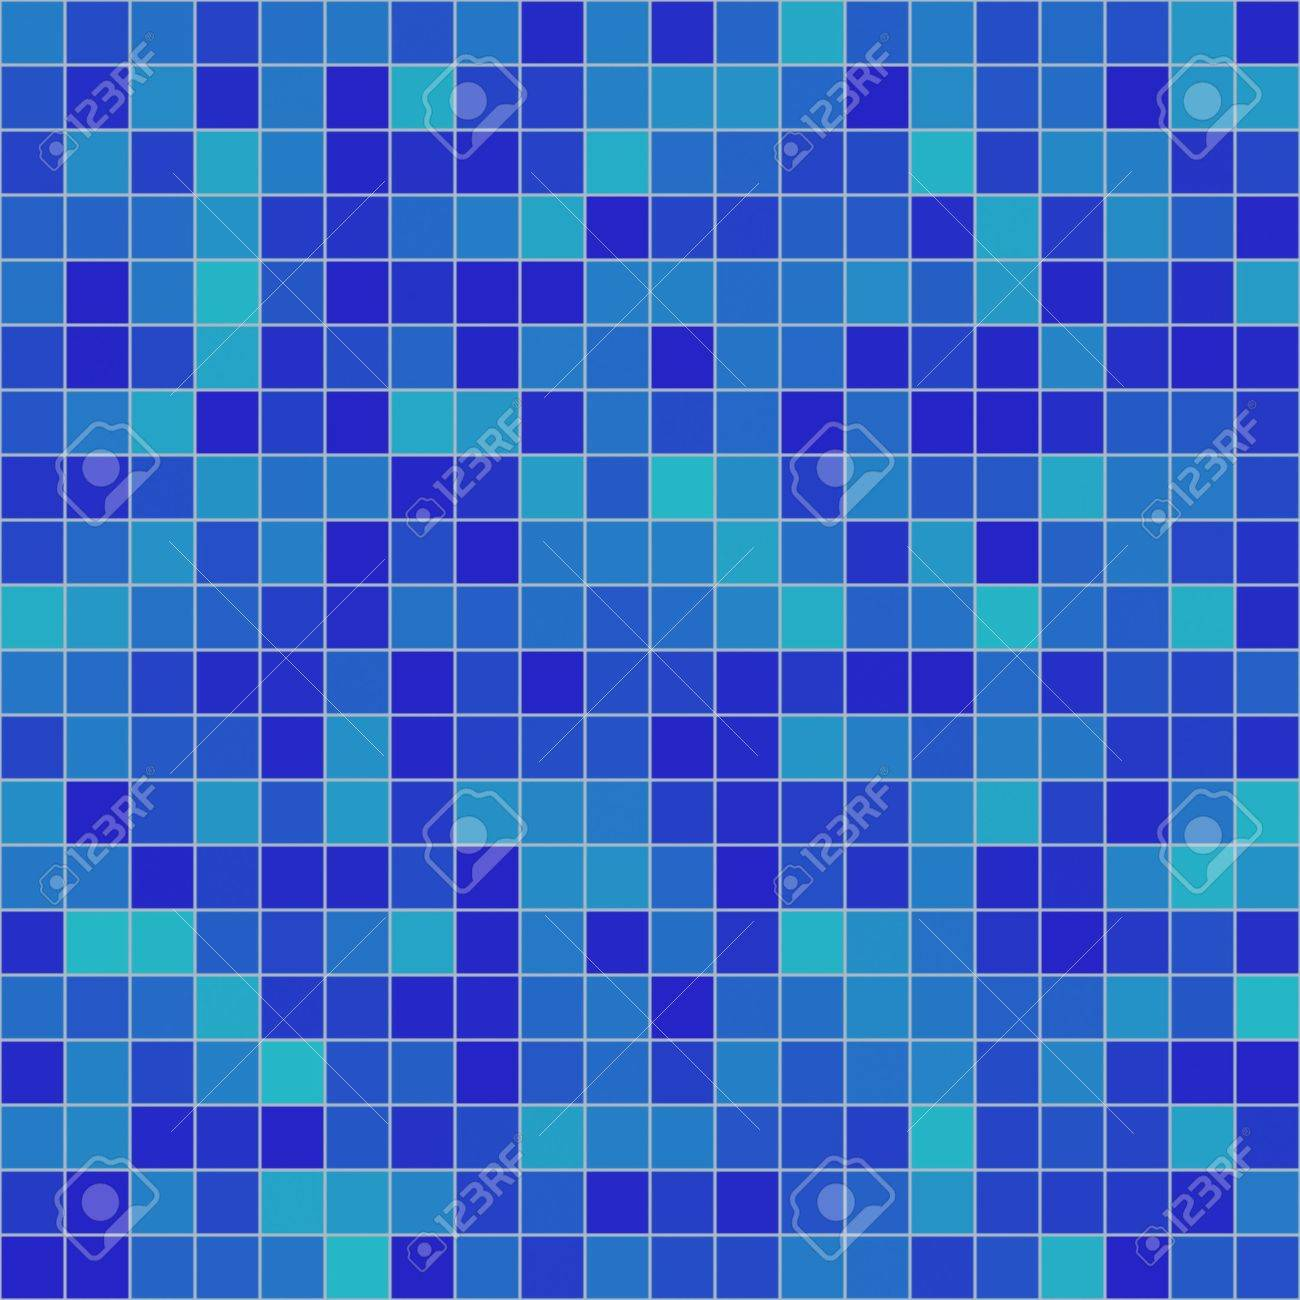 Bathroom Tiles Background seamless tileable background of bathroom or swimming pool tiles